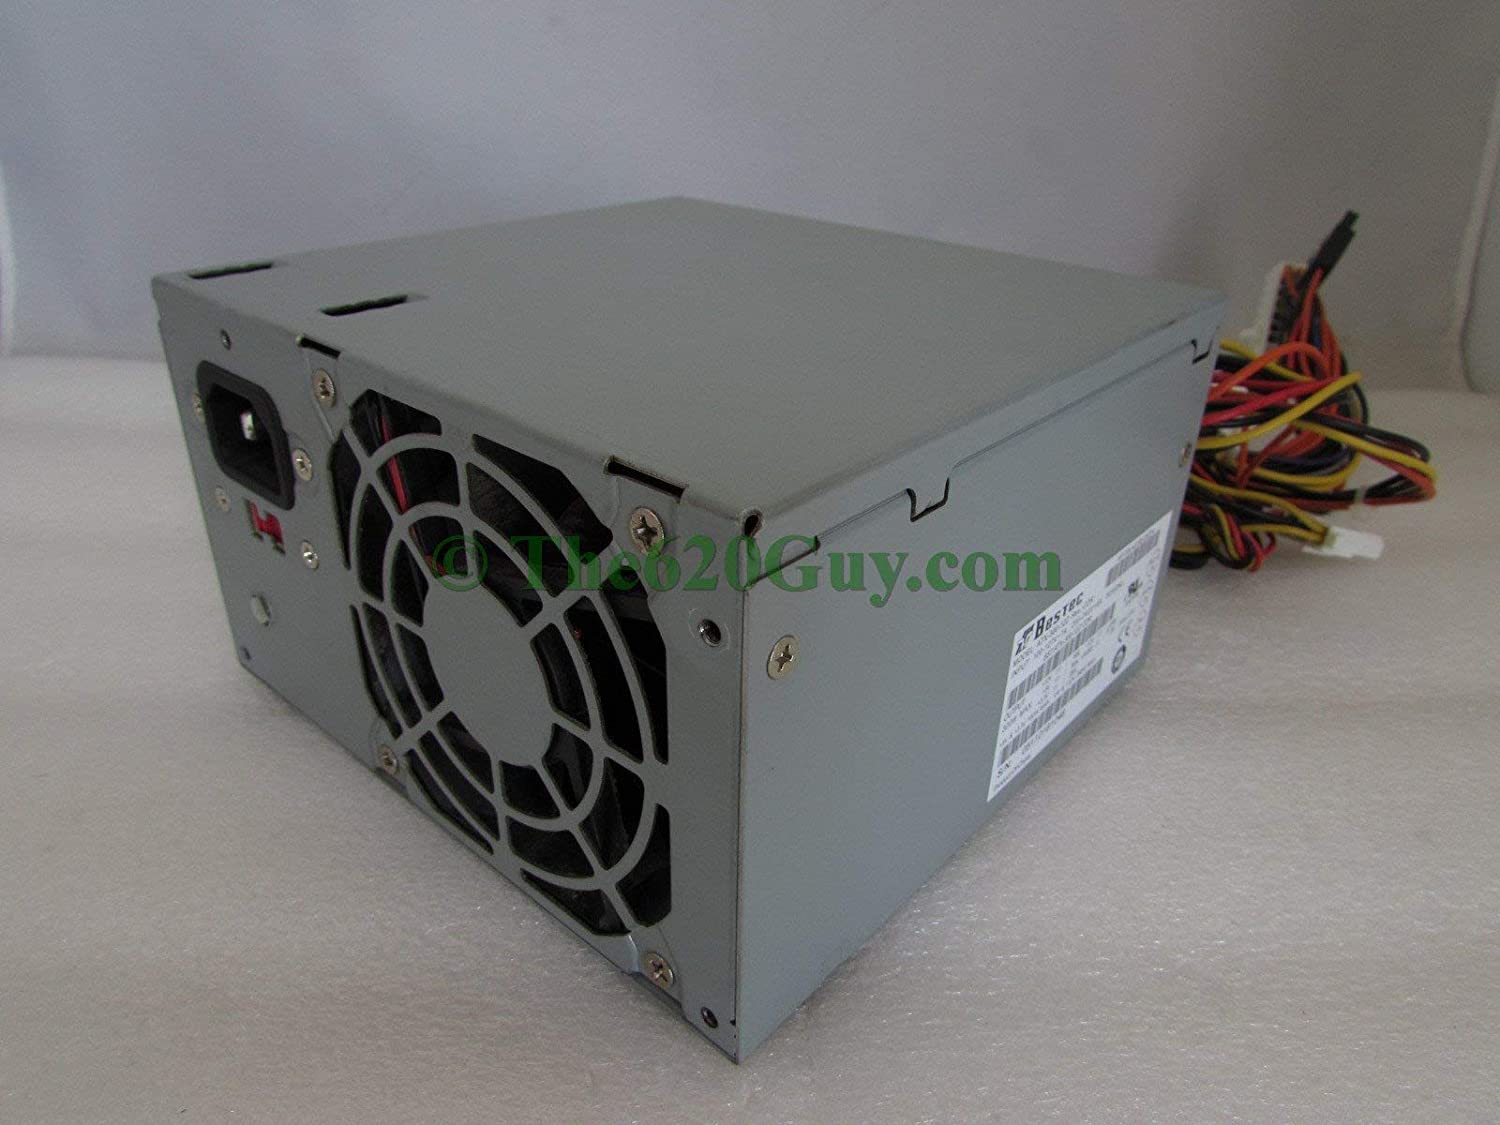 HP Genuine OEM Original 5188-2625 Bestec ATX-300-12Z Rev:CDR 300W Power Supply (Renewed)